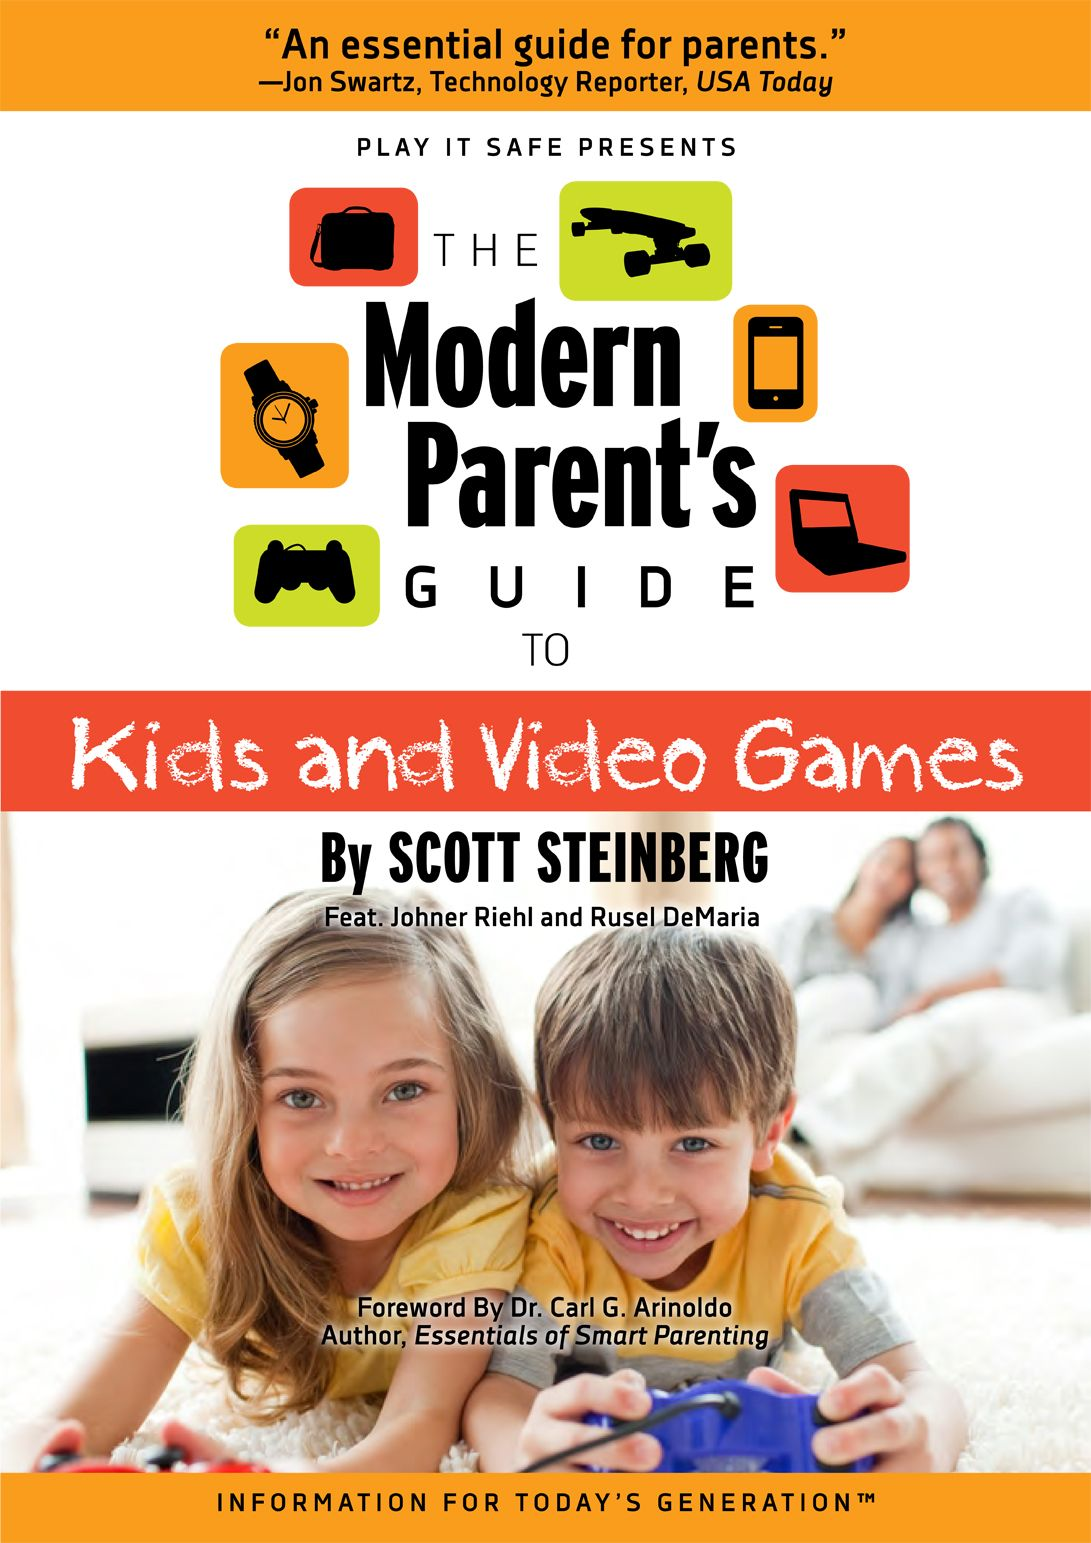 The Modern Parents Guide to Kids and Video Games